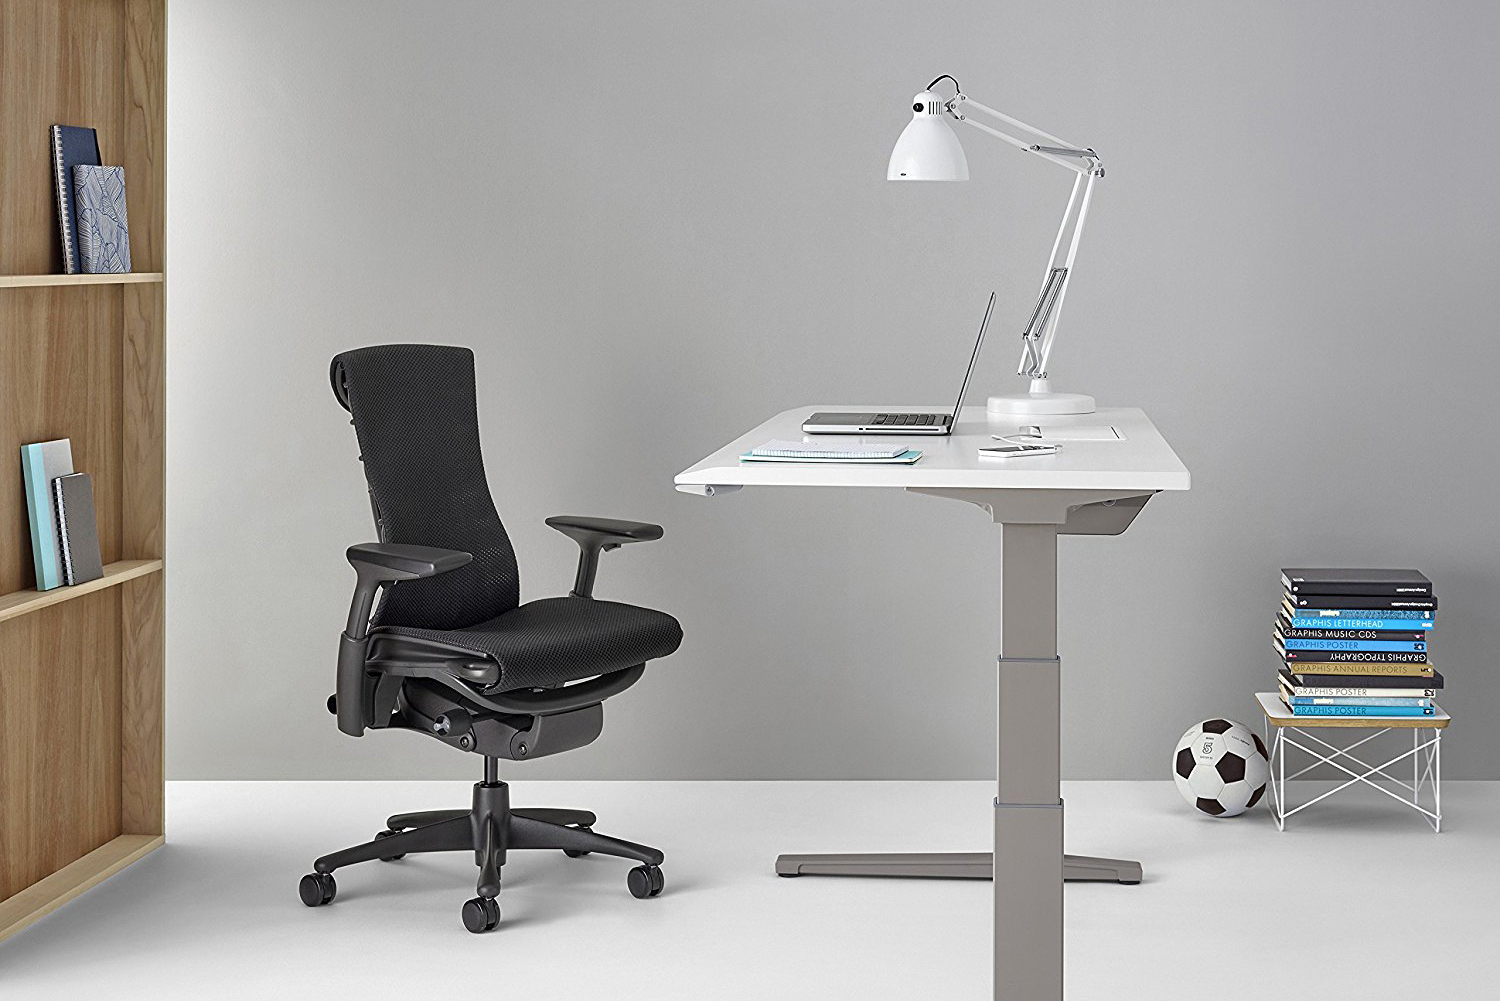 the 11 best chairs for your home or office | digital trends